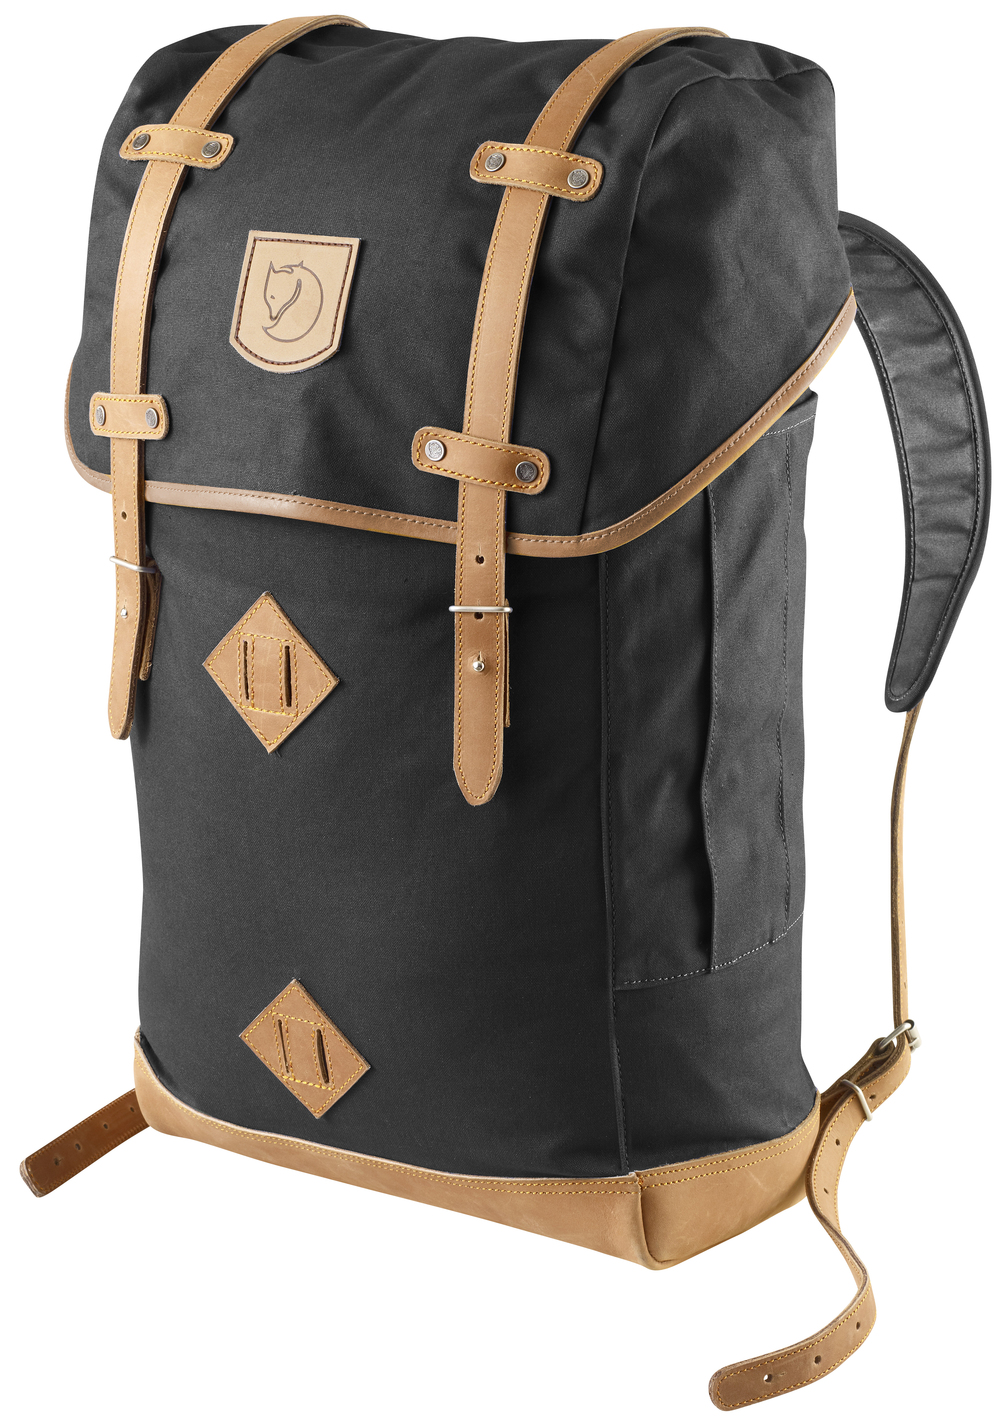 Fjällräven: The Rucksack       This pack want to climb mountains just for the epic selfie!  A heavy-duty day hiker/overnighter built to last! If packed smart, you could easily use this for an overnight beach trip or into the hills.     Being a poly/cotton waxed canvas, the fabric on its own is water resistant but by waxing the fabric further, you can almost make it waterproof. The wax comes in a block which you just rub onto the fabric as lightly or as heavy as you want, and then you just melt it in with a blow-drier.   Made in Vietnam                         $200    fjallraven.us